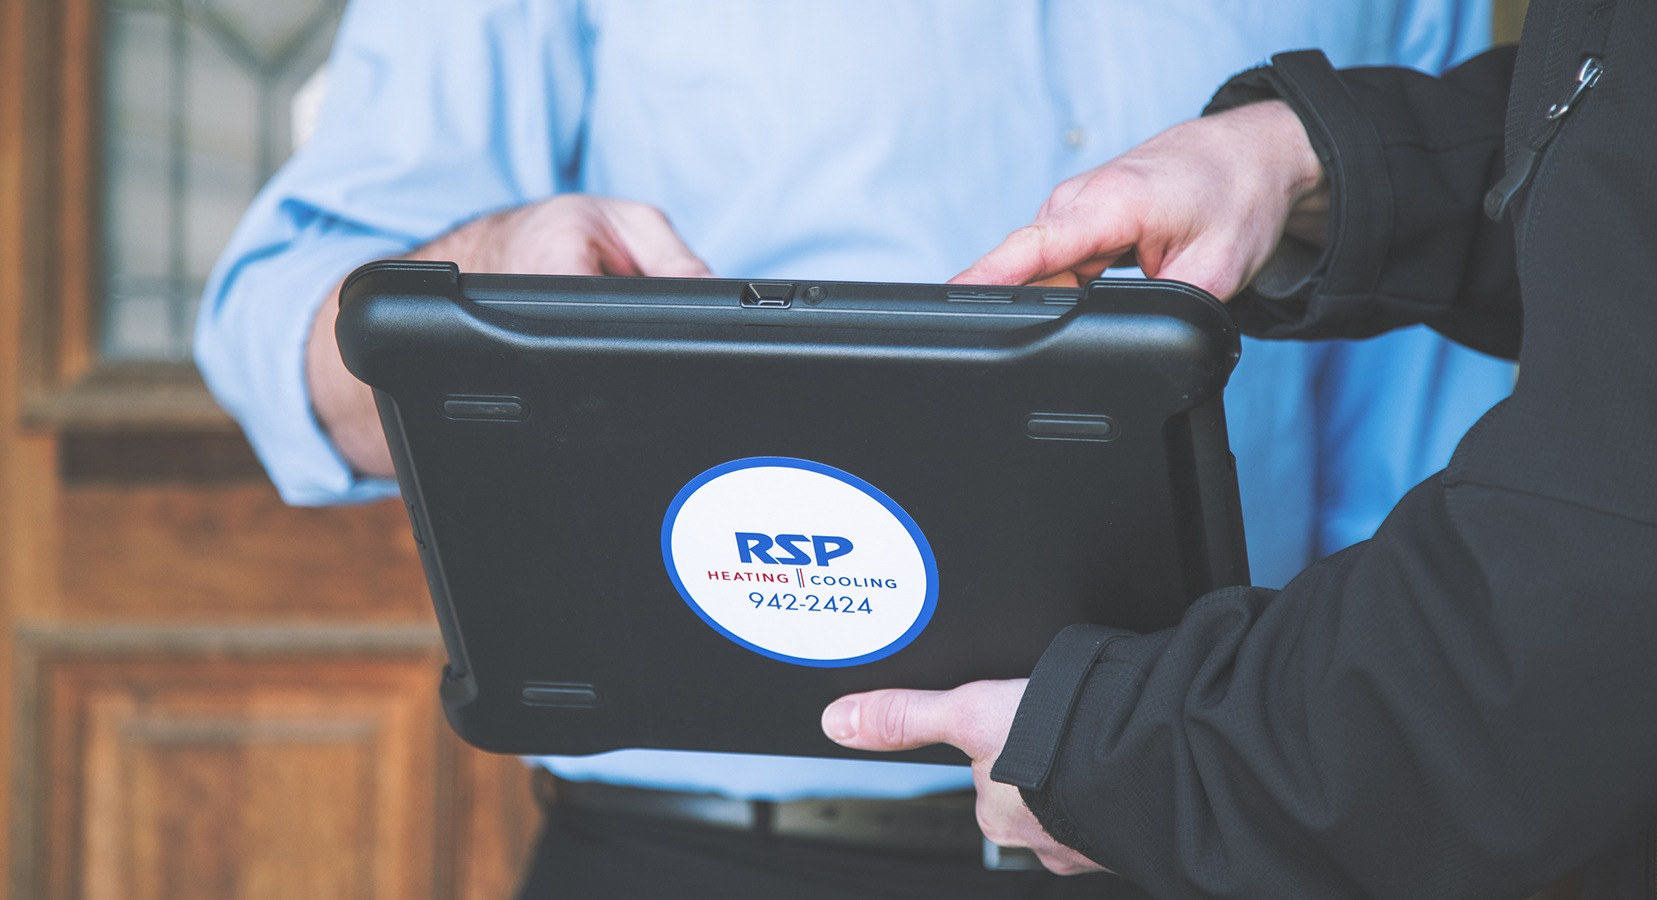 Repair service - RSP HVAC